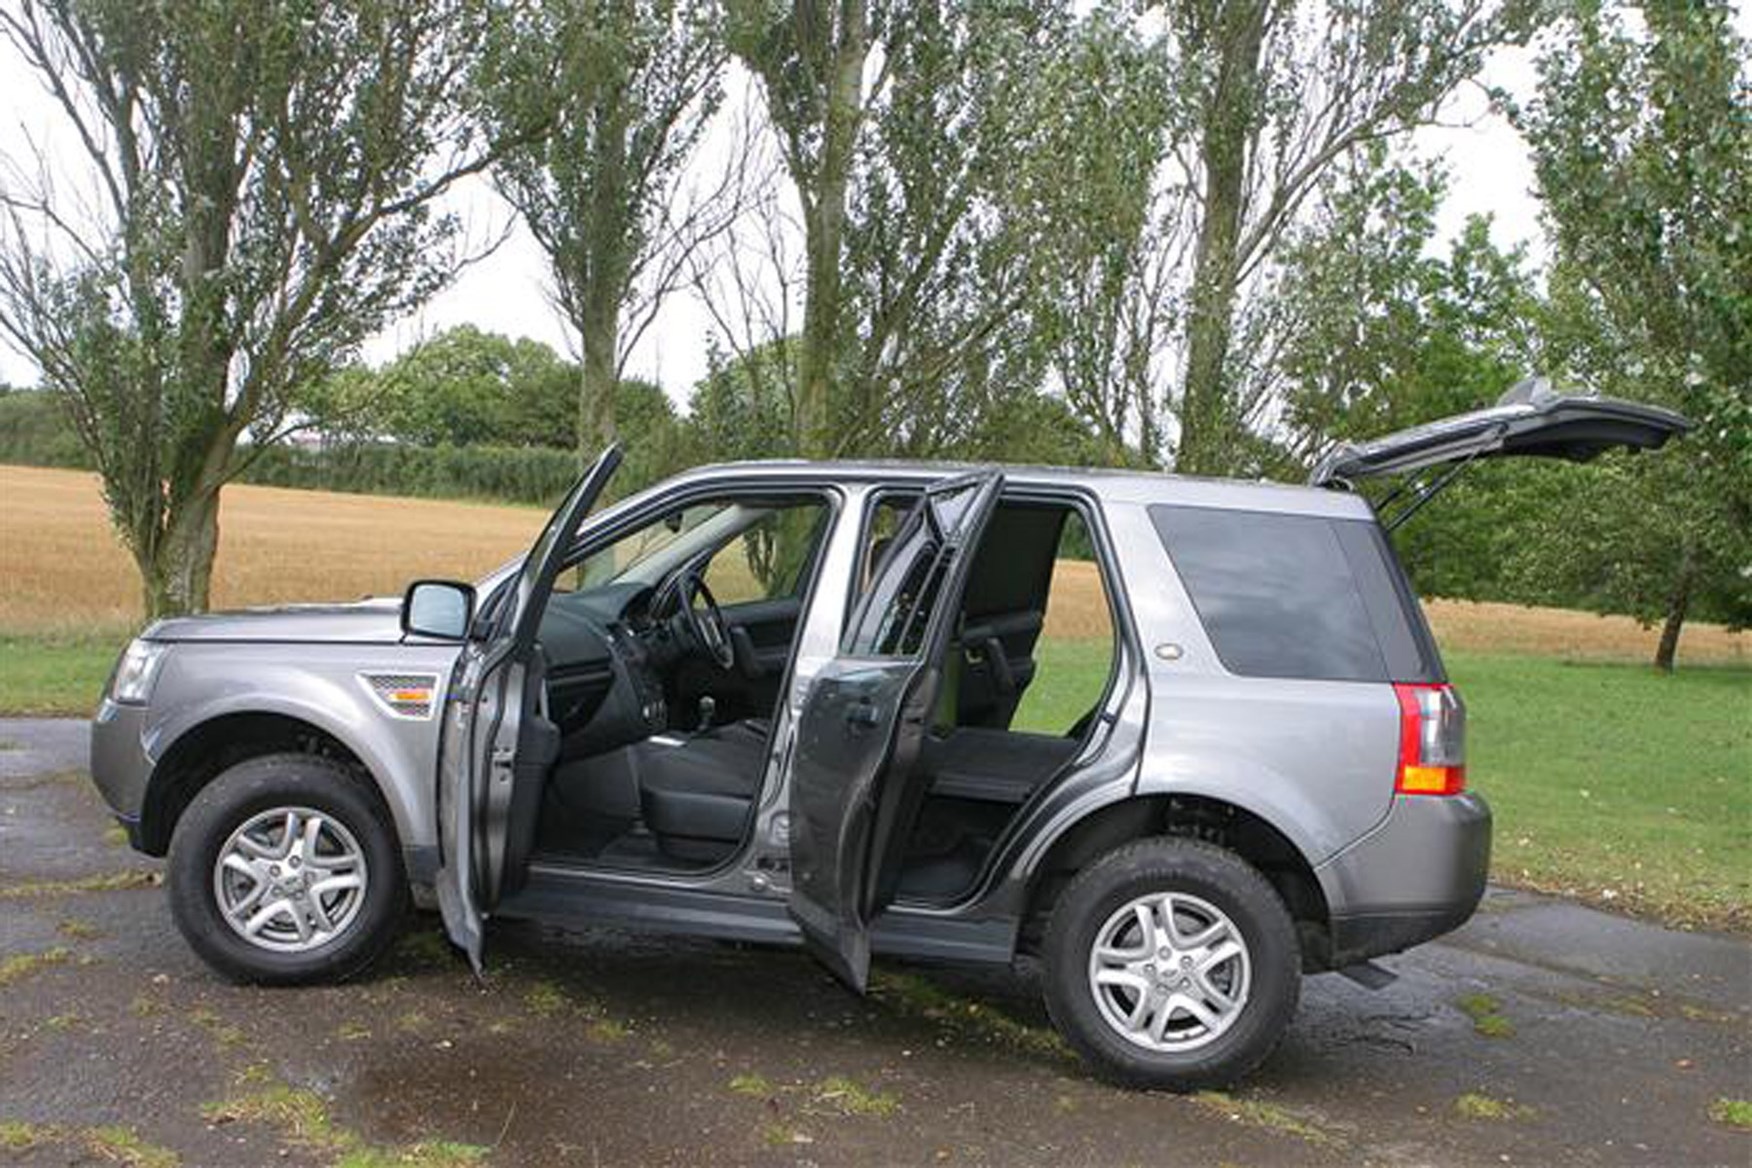 Land Rover Freelander review on Parkers Vans - load area access